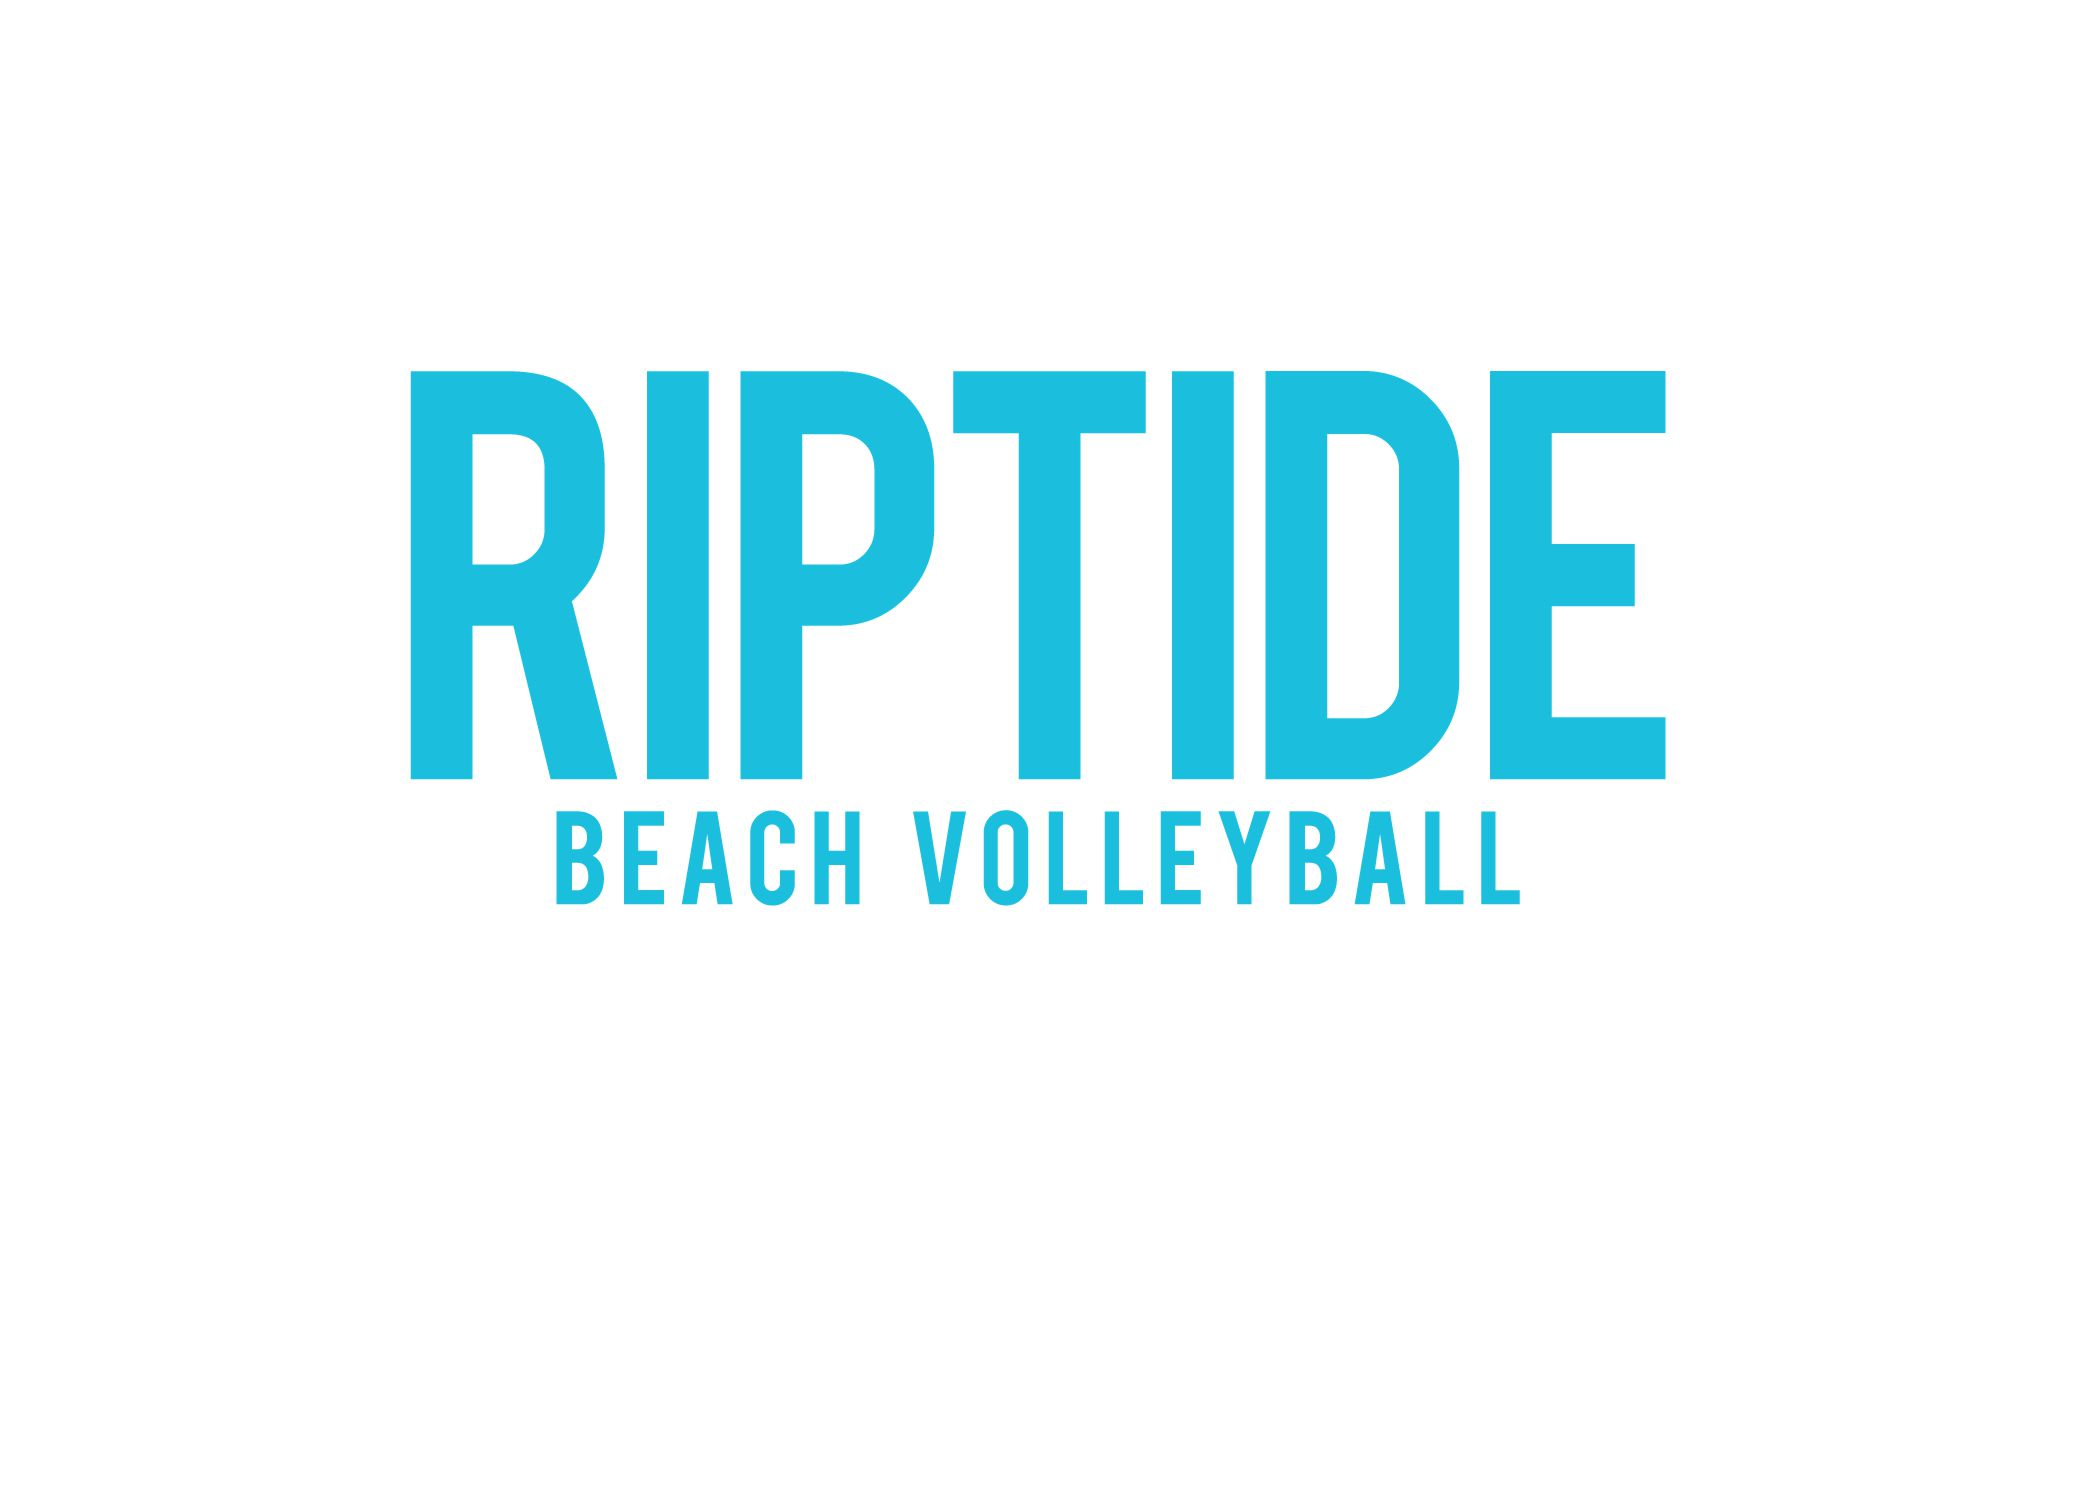 Riptide Beach Volleyball